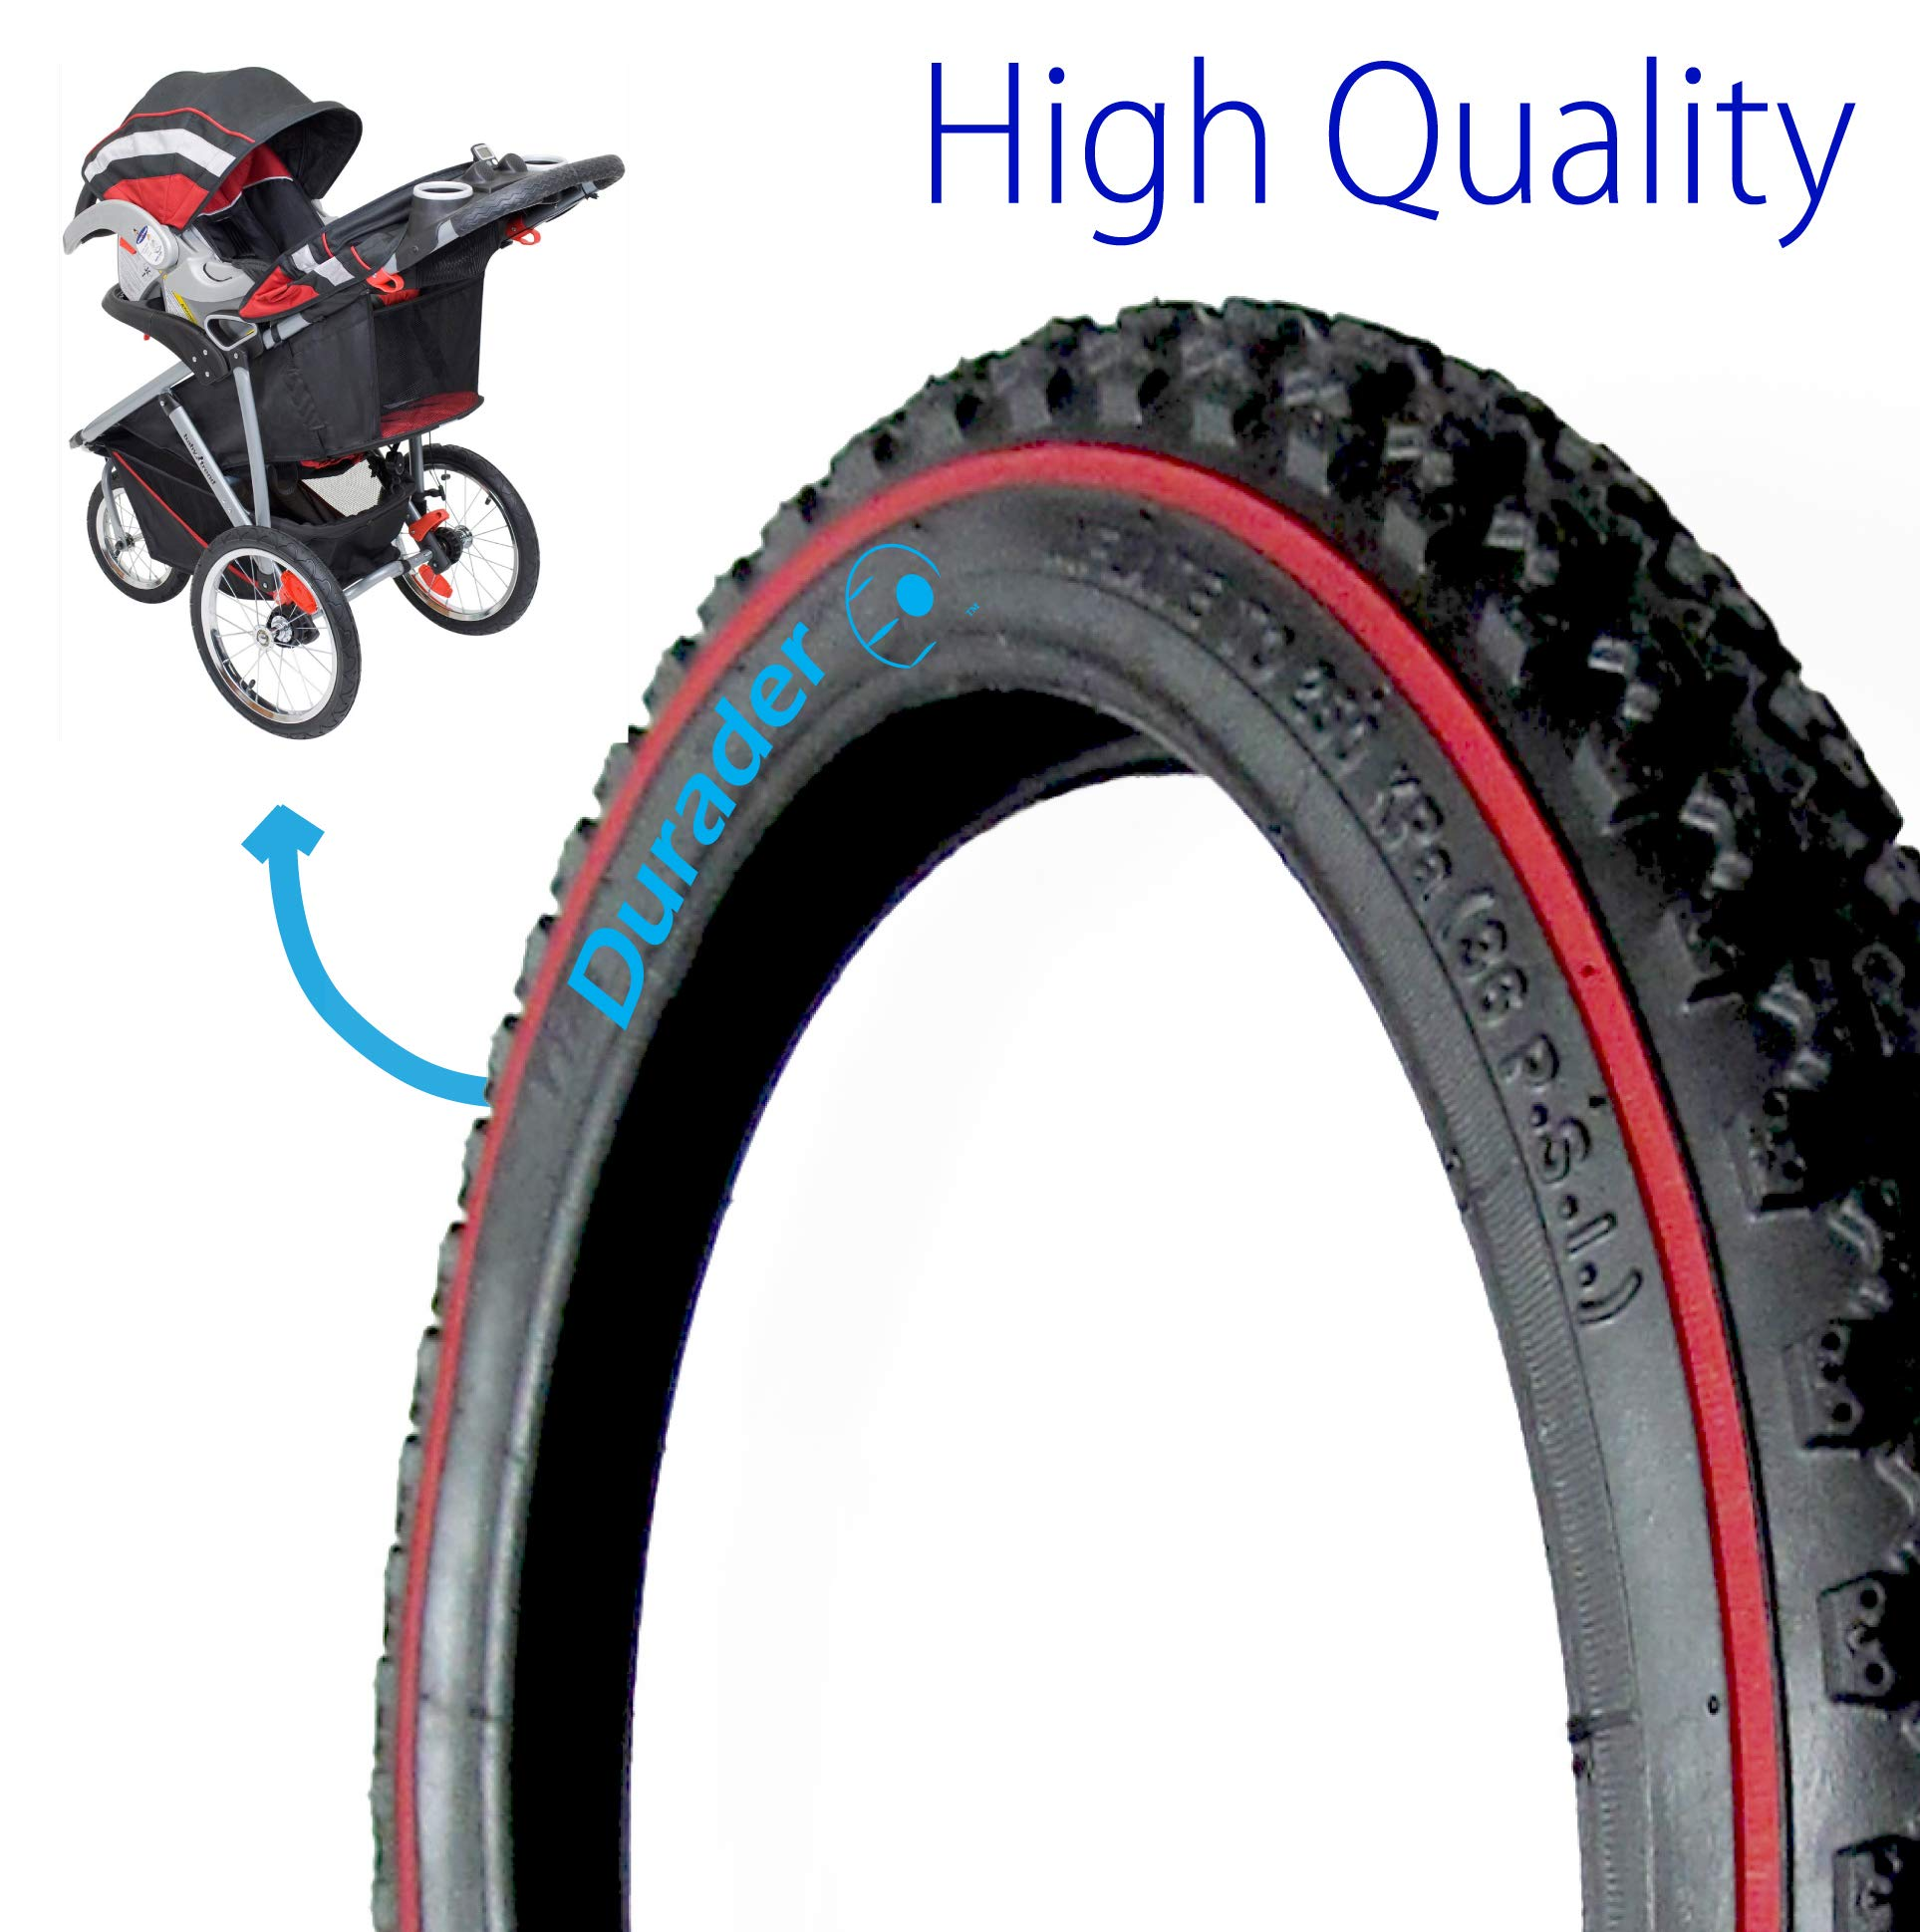 Rear tire for Baby Trend Stroller by Lineament (Image #1)